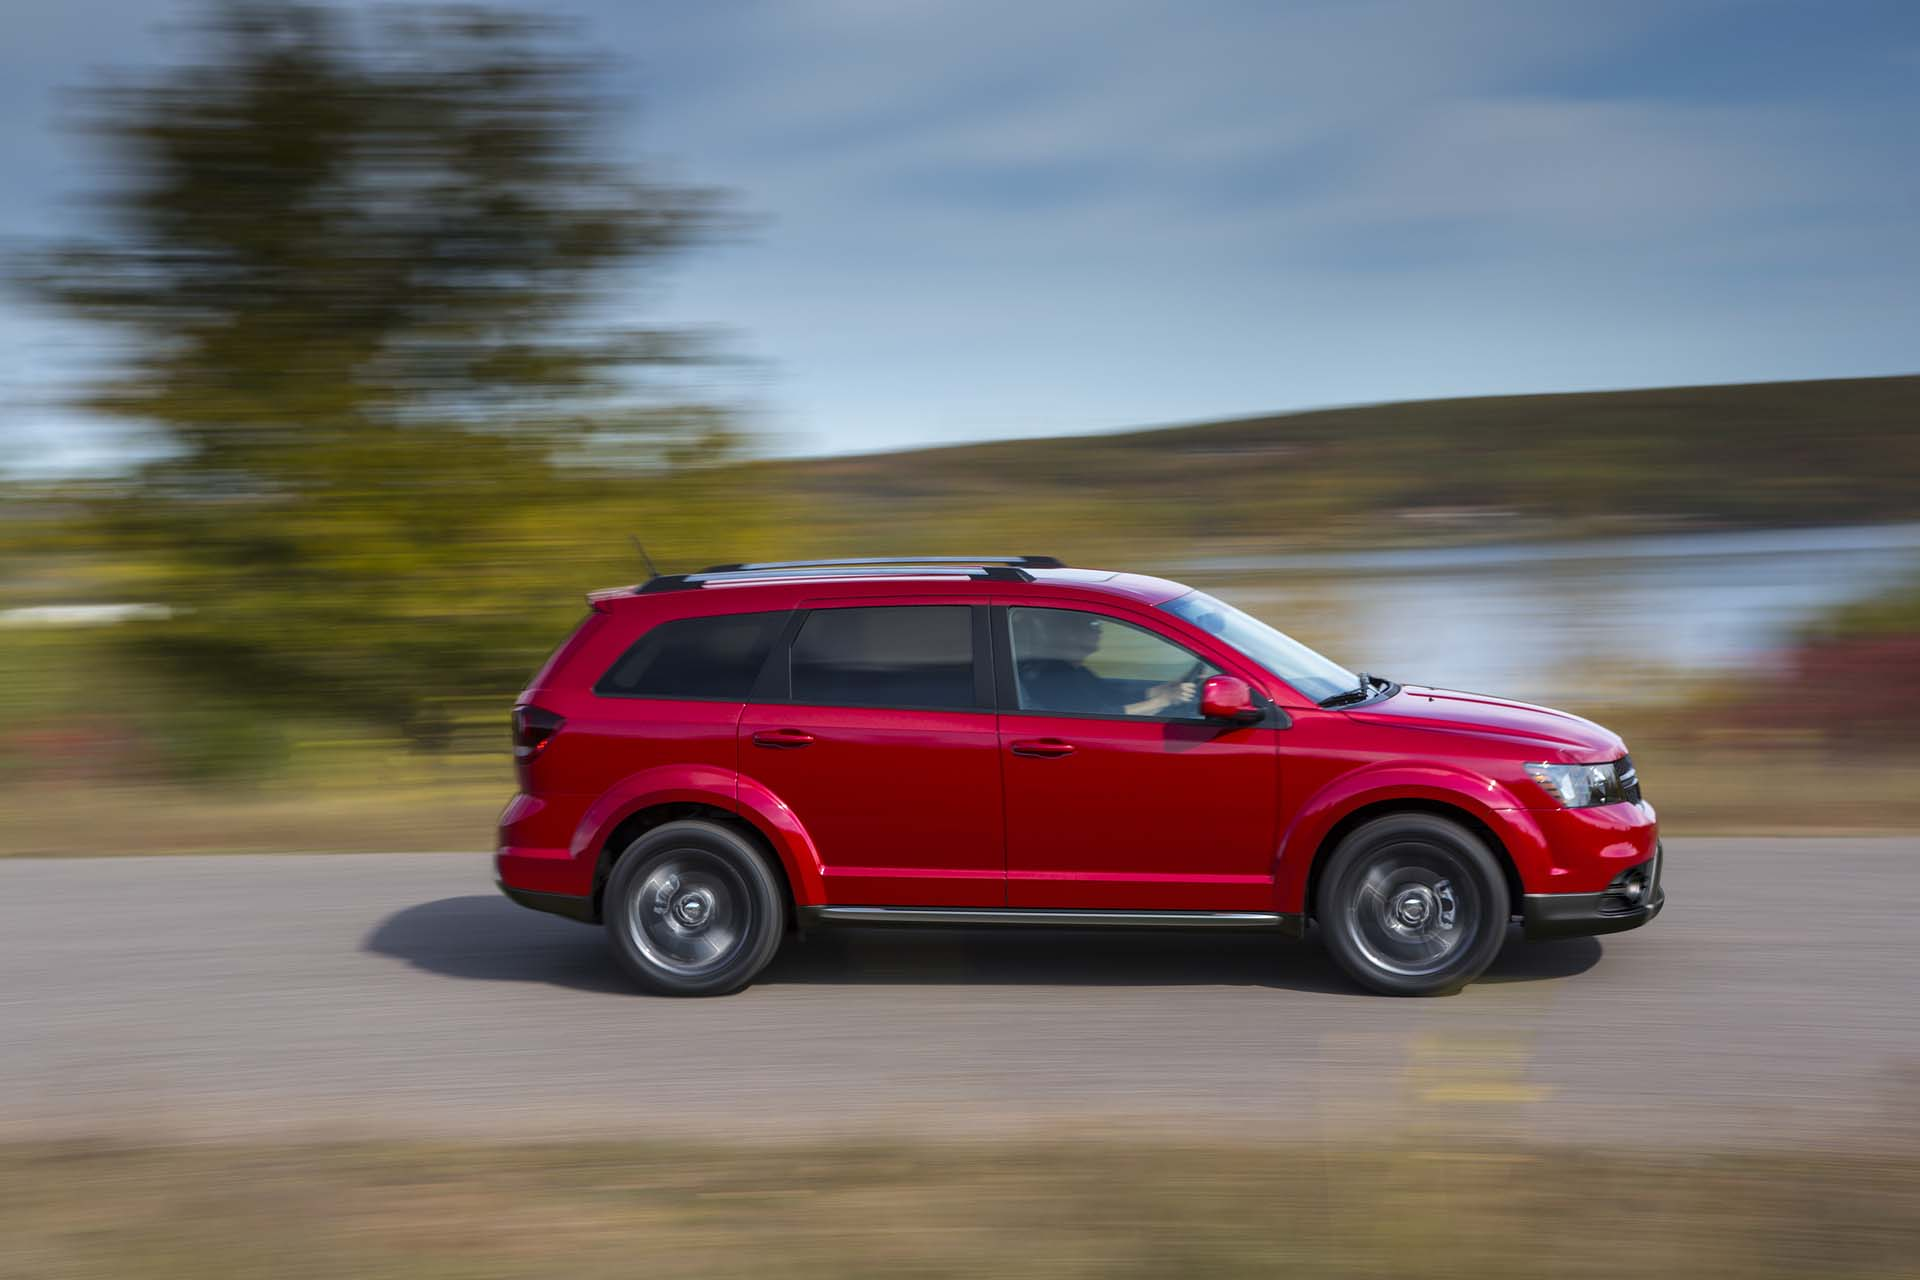 2017 Dodge Journey Quality Review The Car Connection